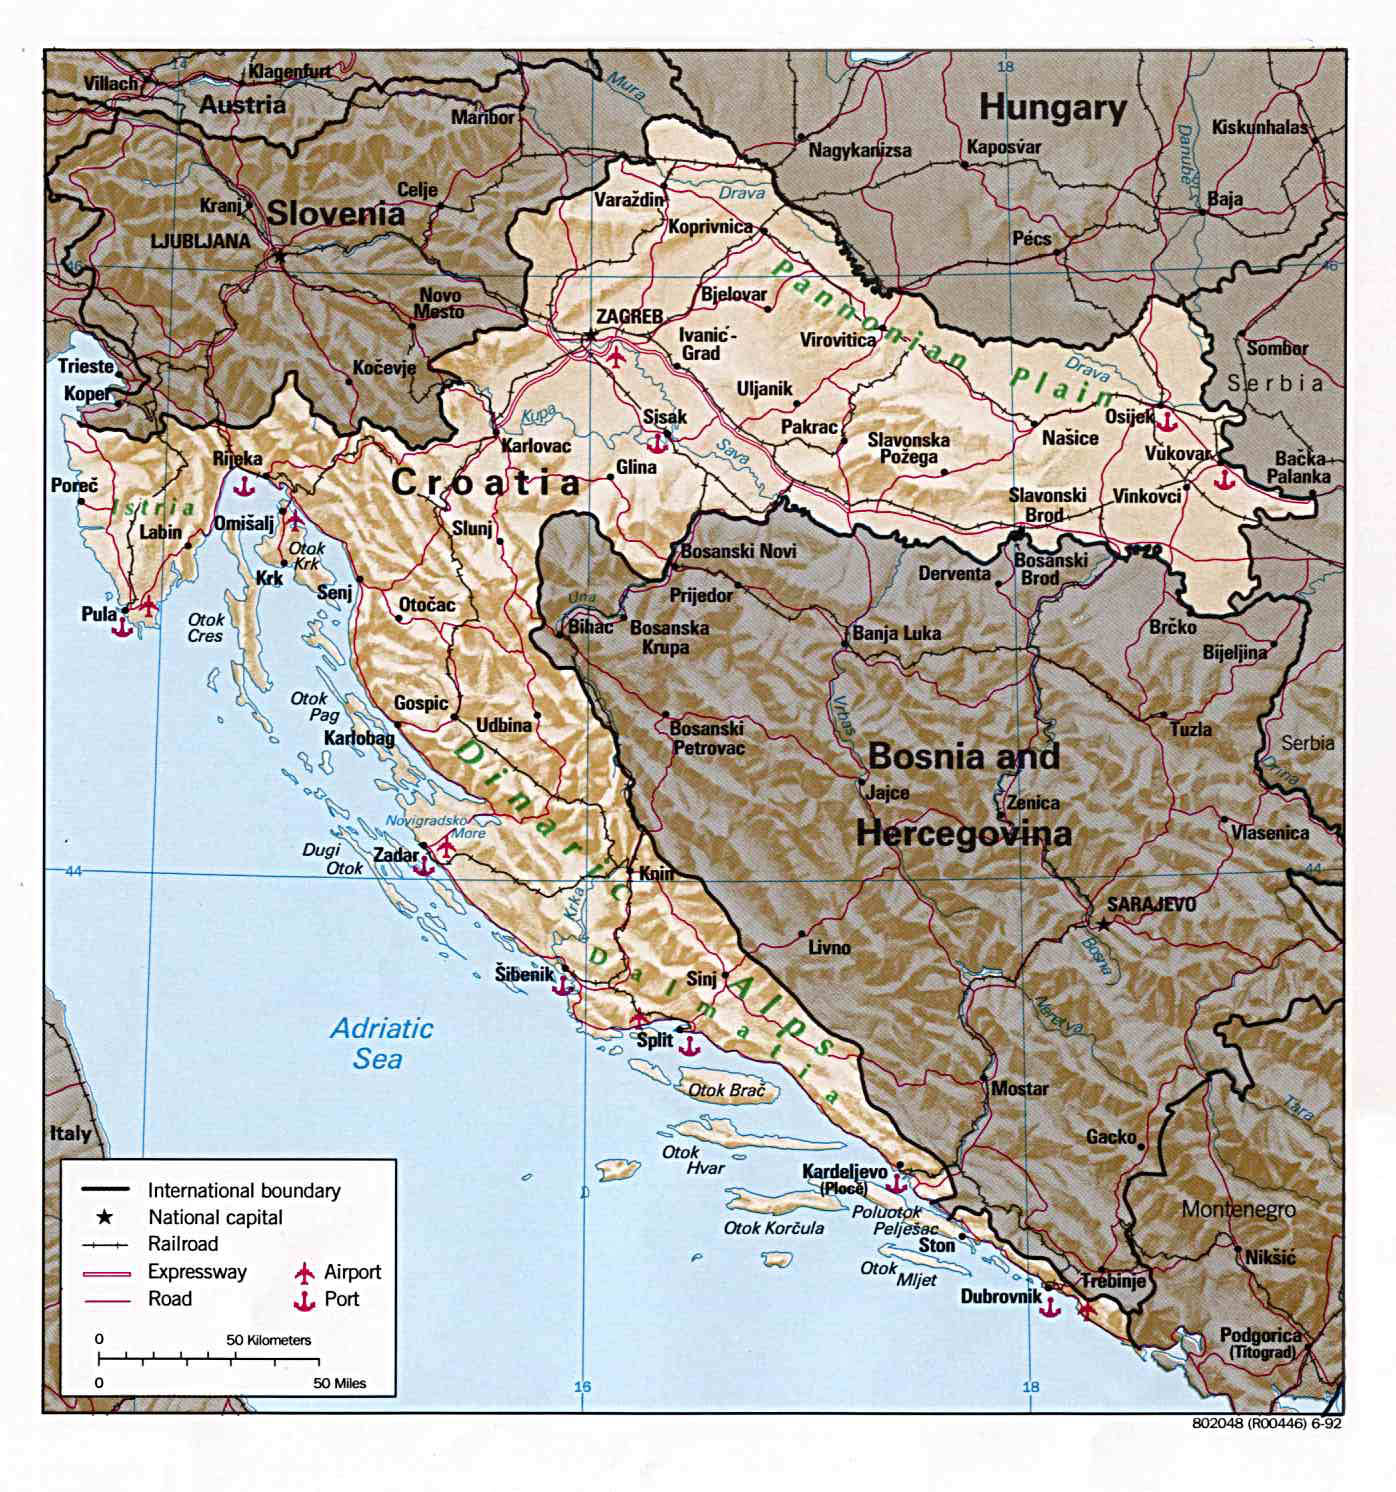 Relief and road map of Croatia. Croatia relief and road map ... on italian autos, cuba autos, israel autos, peru autos, argentina autos, new zealand autos,